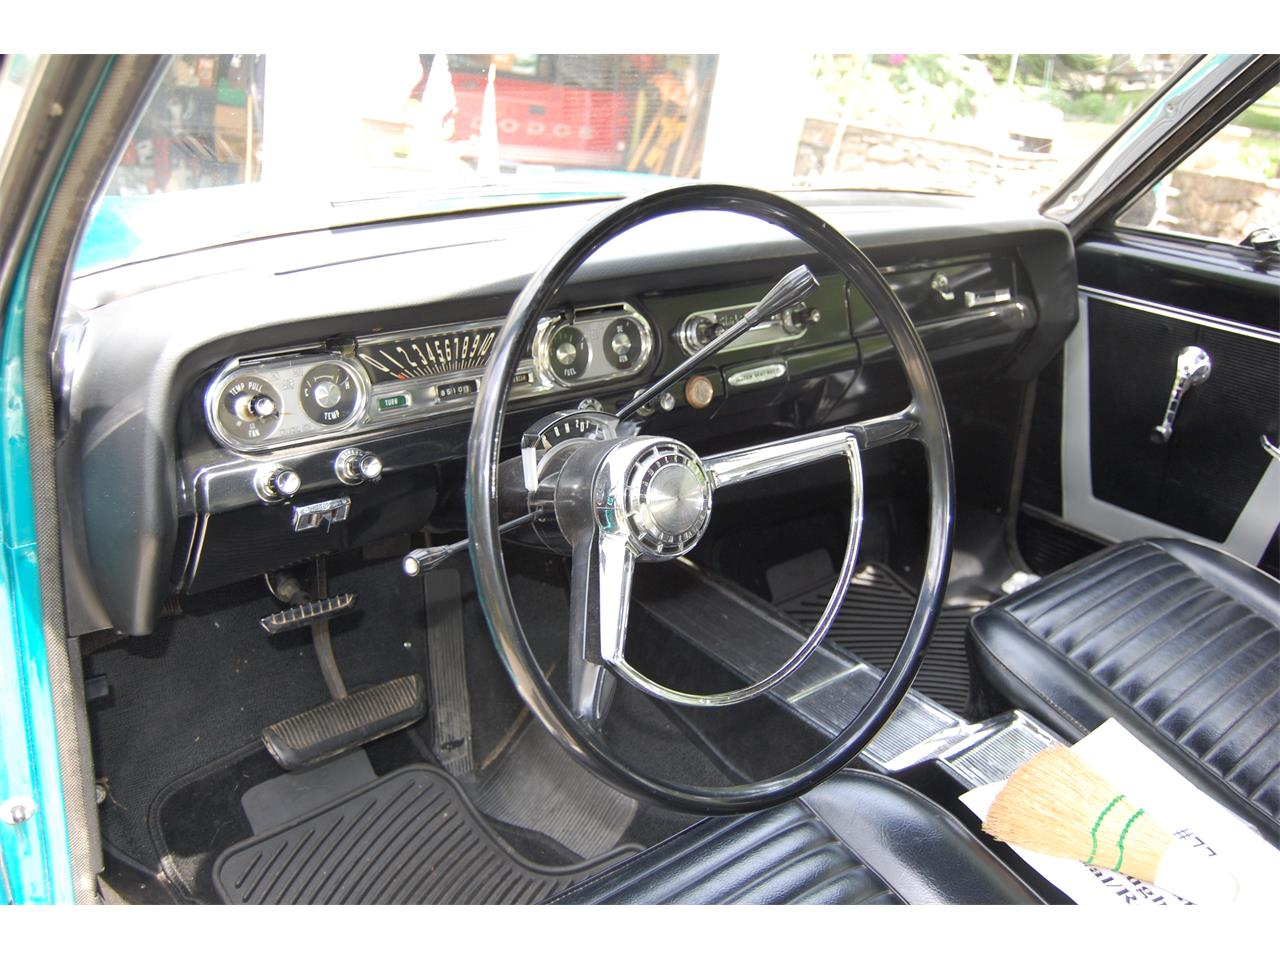 Large Picture of Classic '64 AMC Rambler located in Connecticut Offered by a Private Seller - NIN4